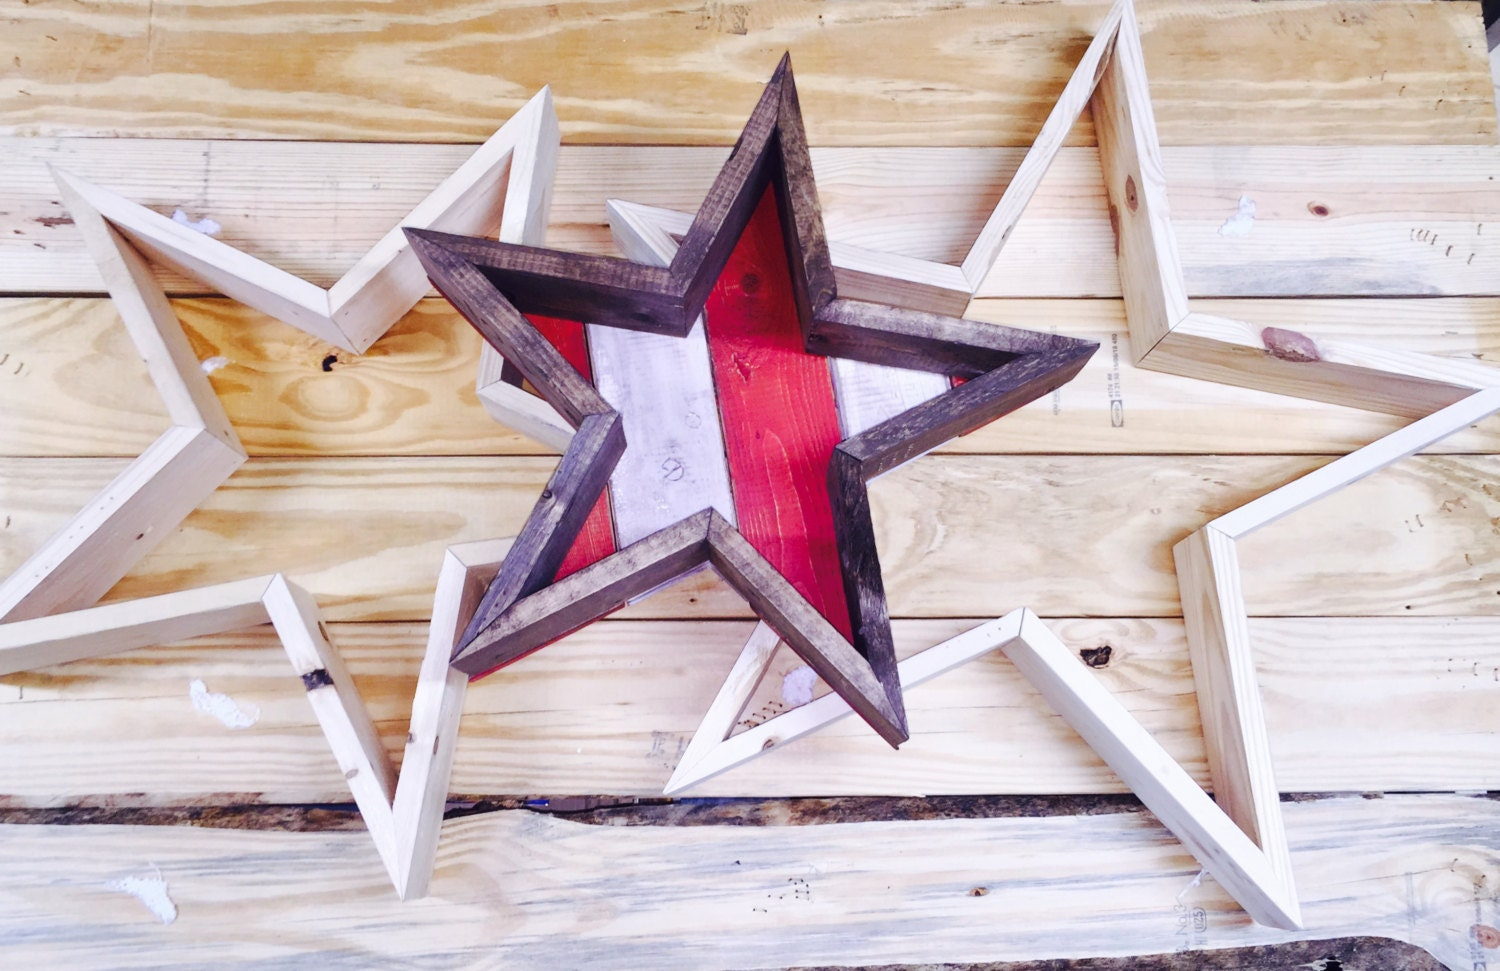 Reclaimed Wood Star TN Art Home Decor Reclaimed Wood By Maydby